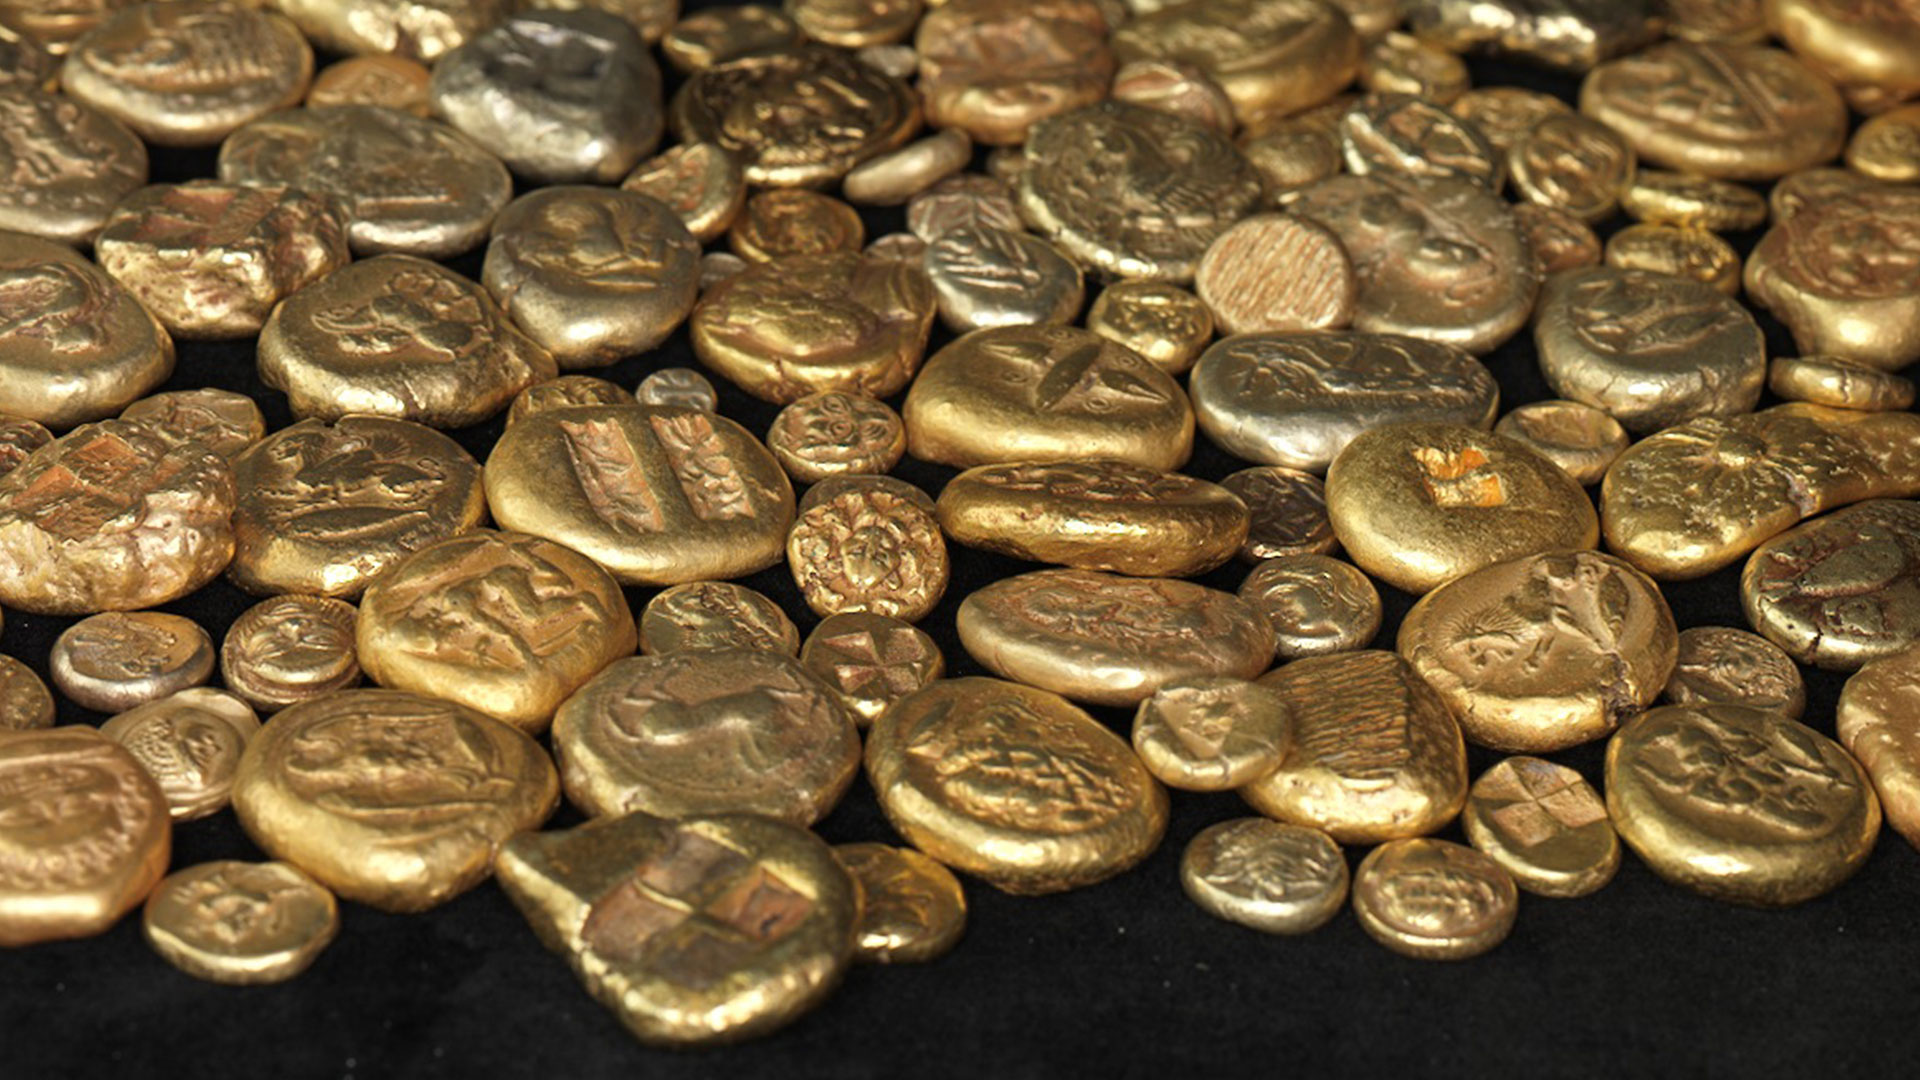 Museums and exhibitions of coins and money: a selection of sites